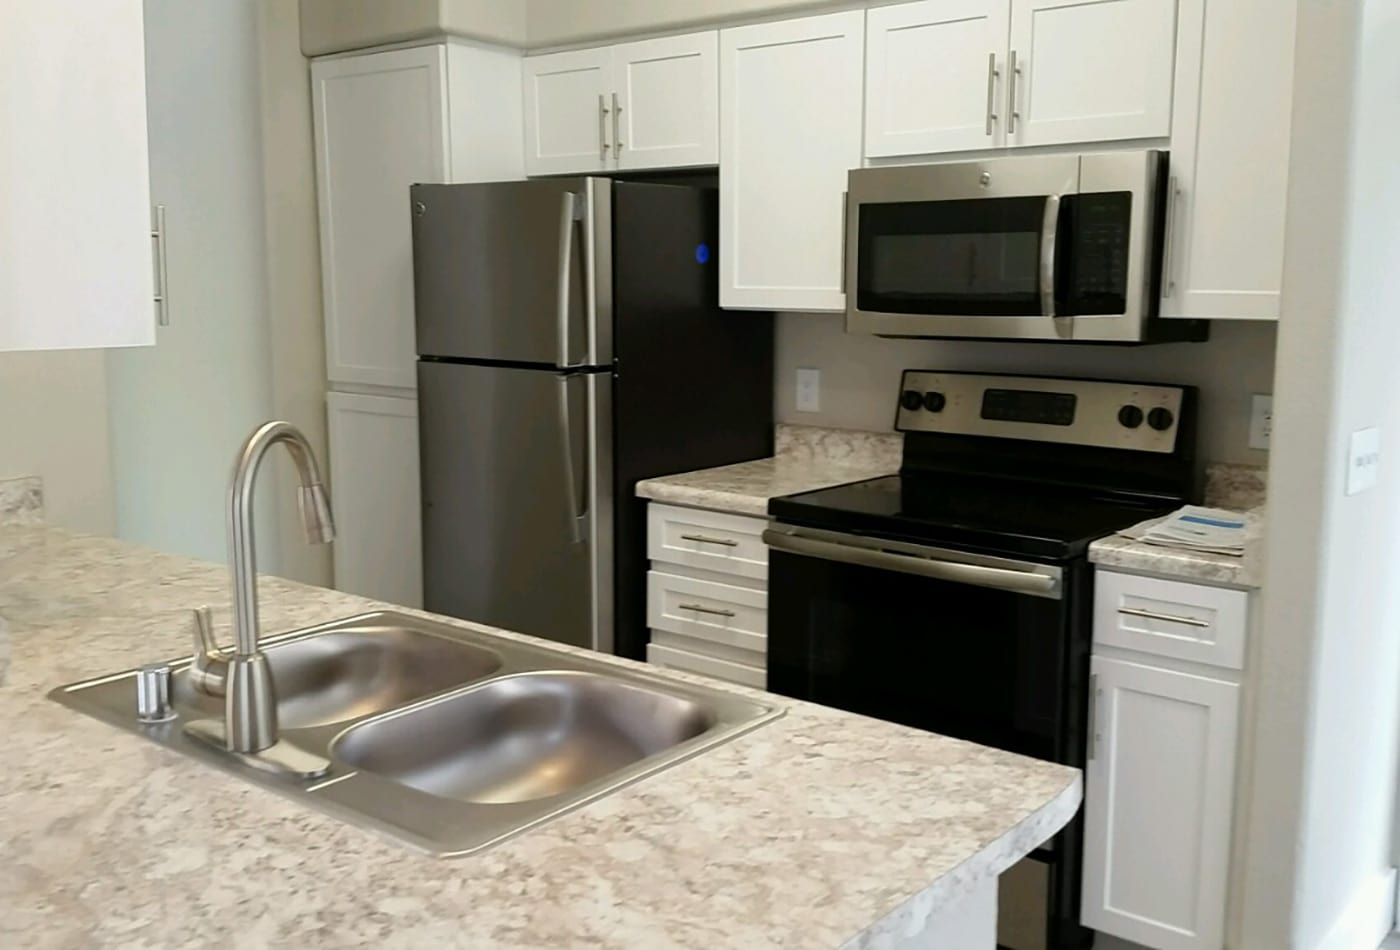 Modern and well-equipped kitchen in model home at The Retreat Apartments